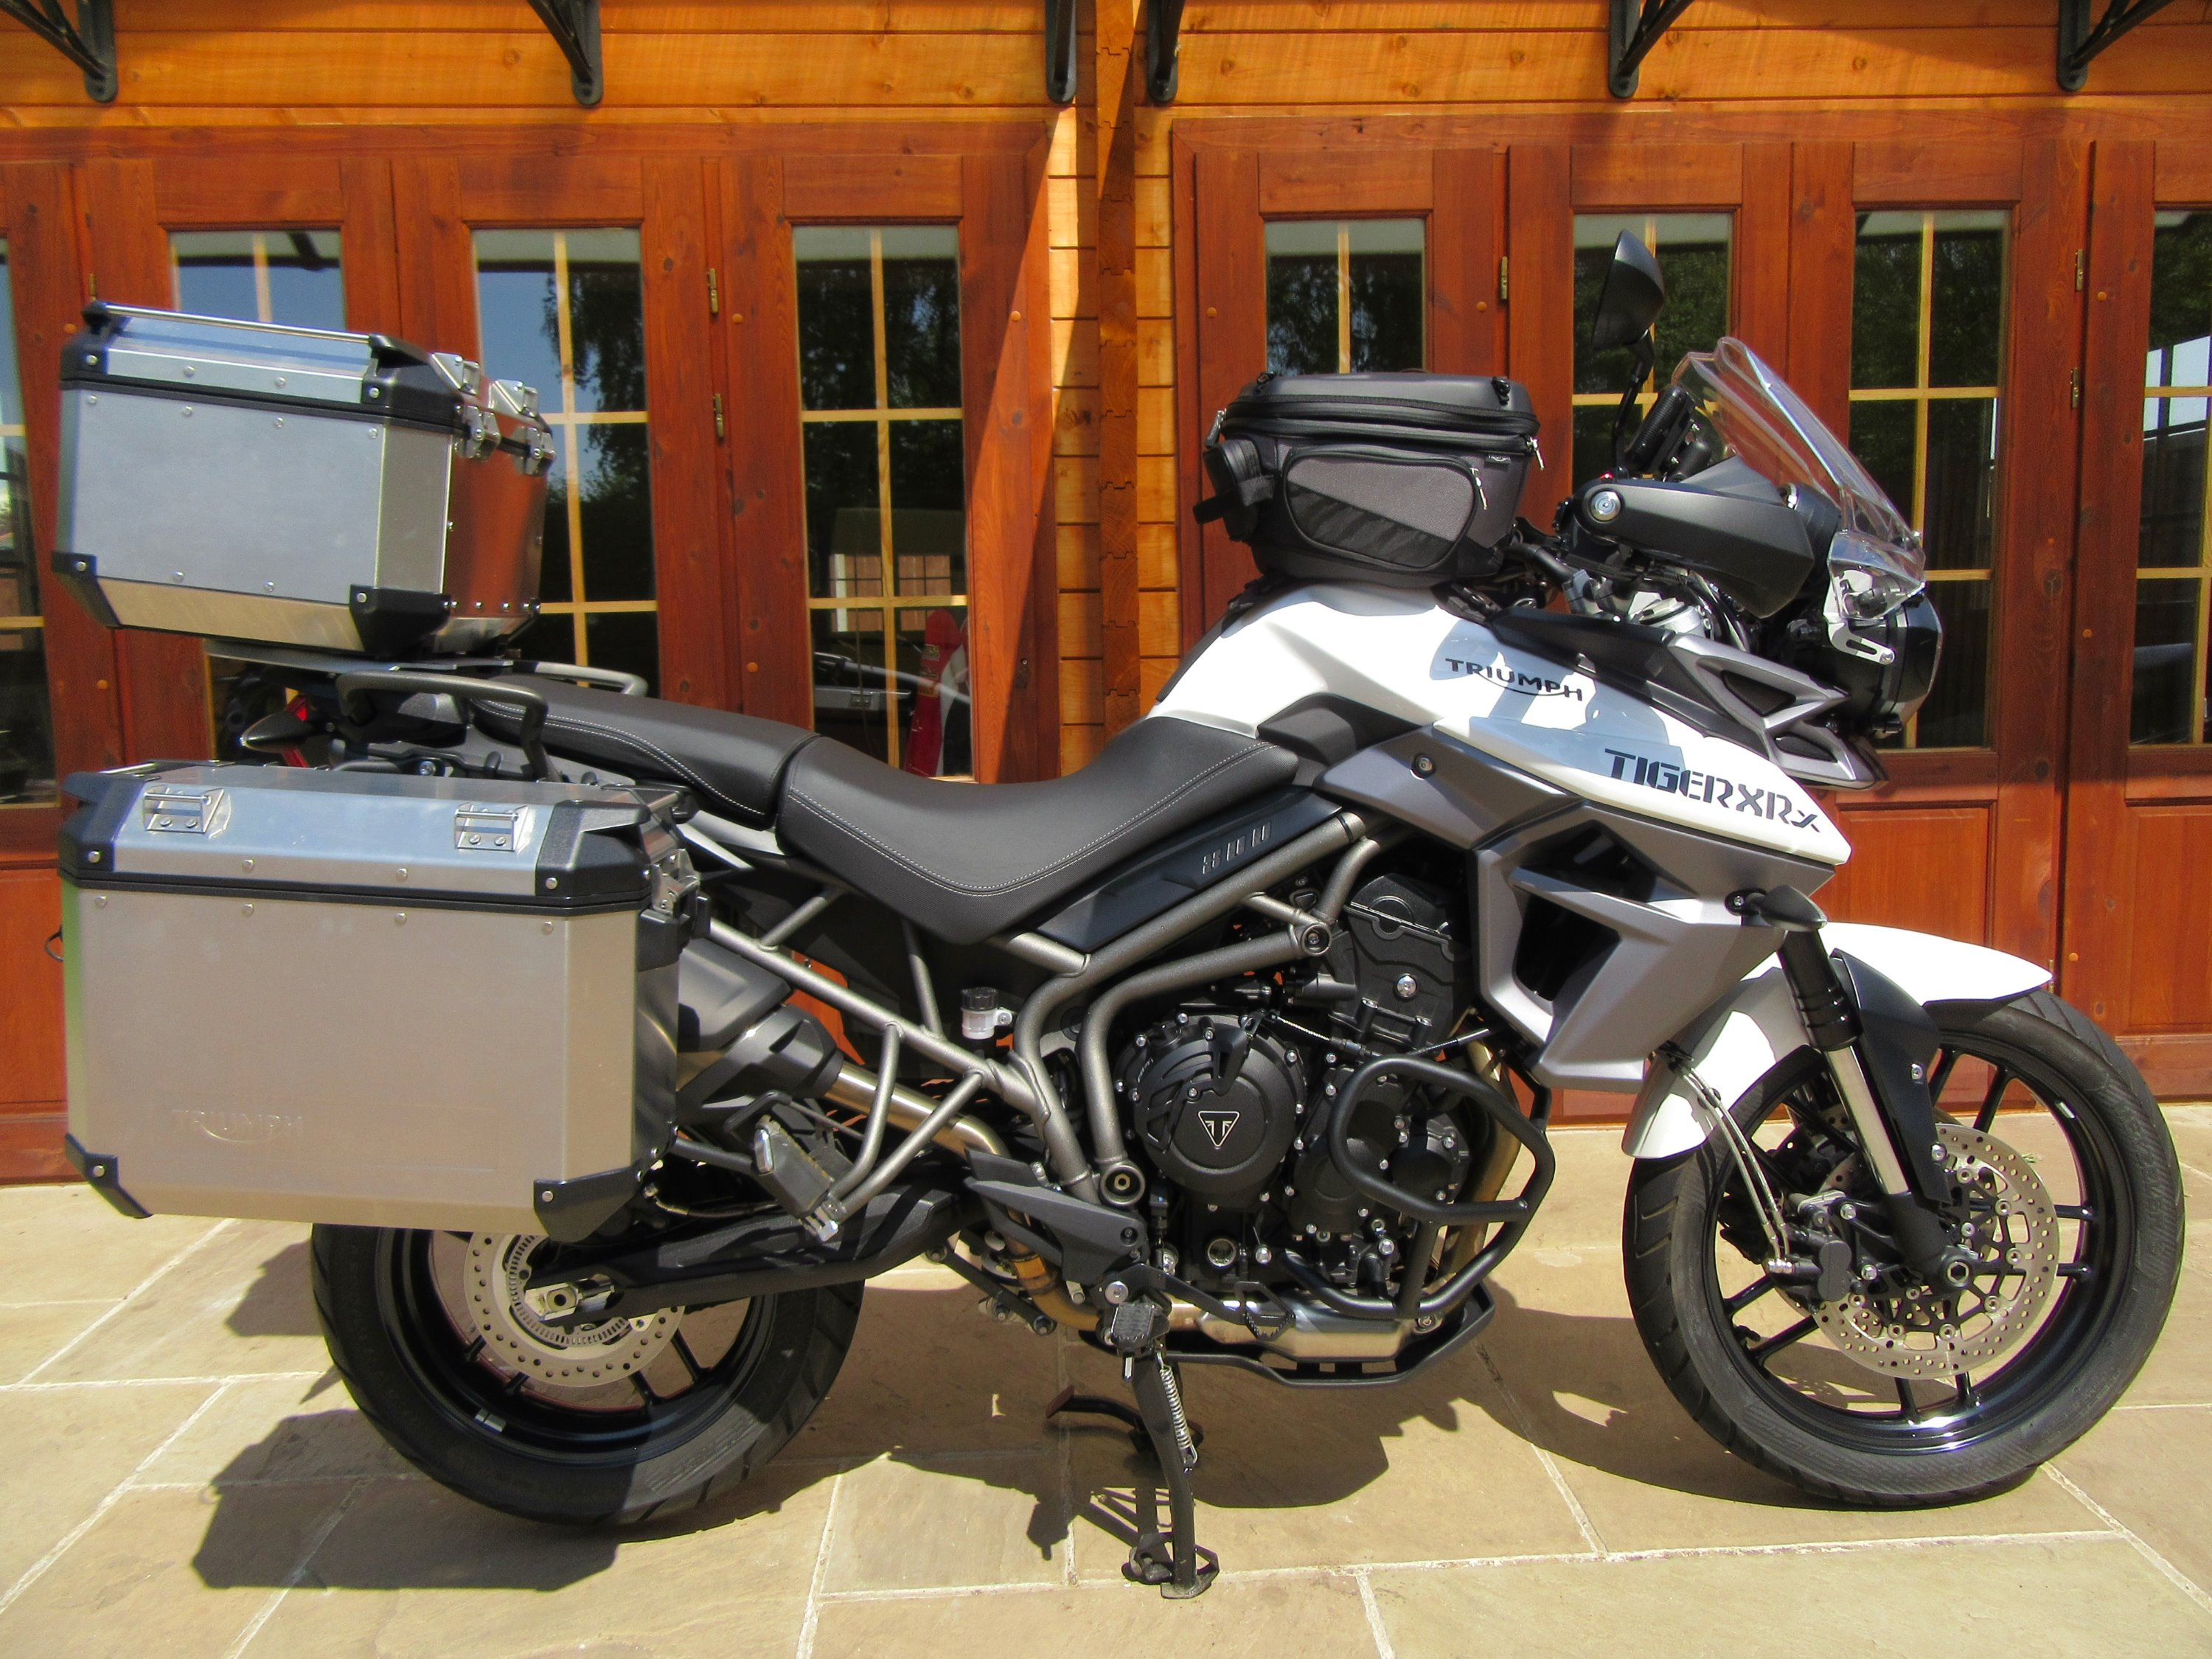 Triumph Tiger 800 XRX – Only 3500 Miles, SORRY – NOW SOLD!!